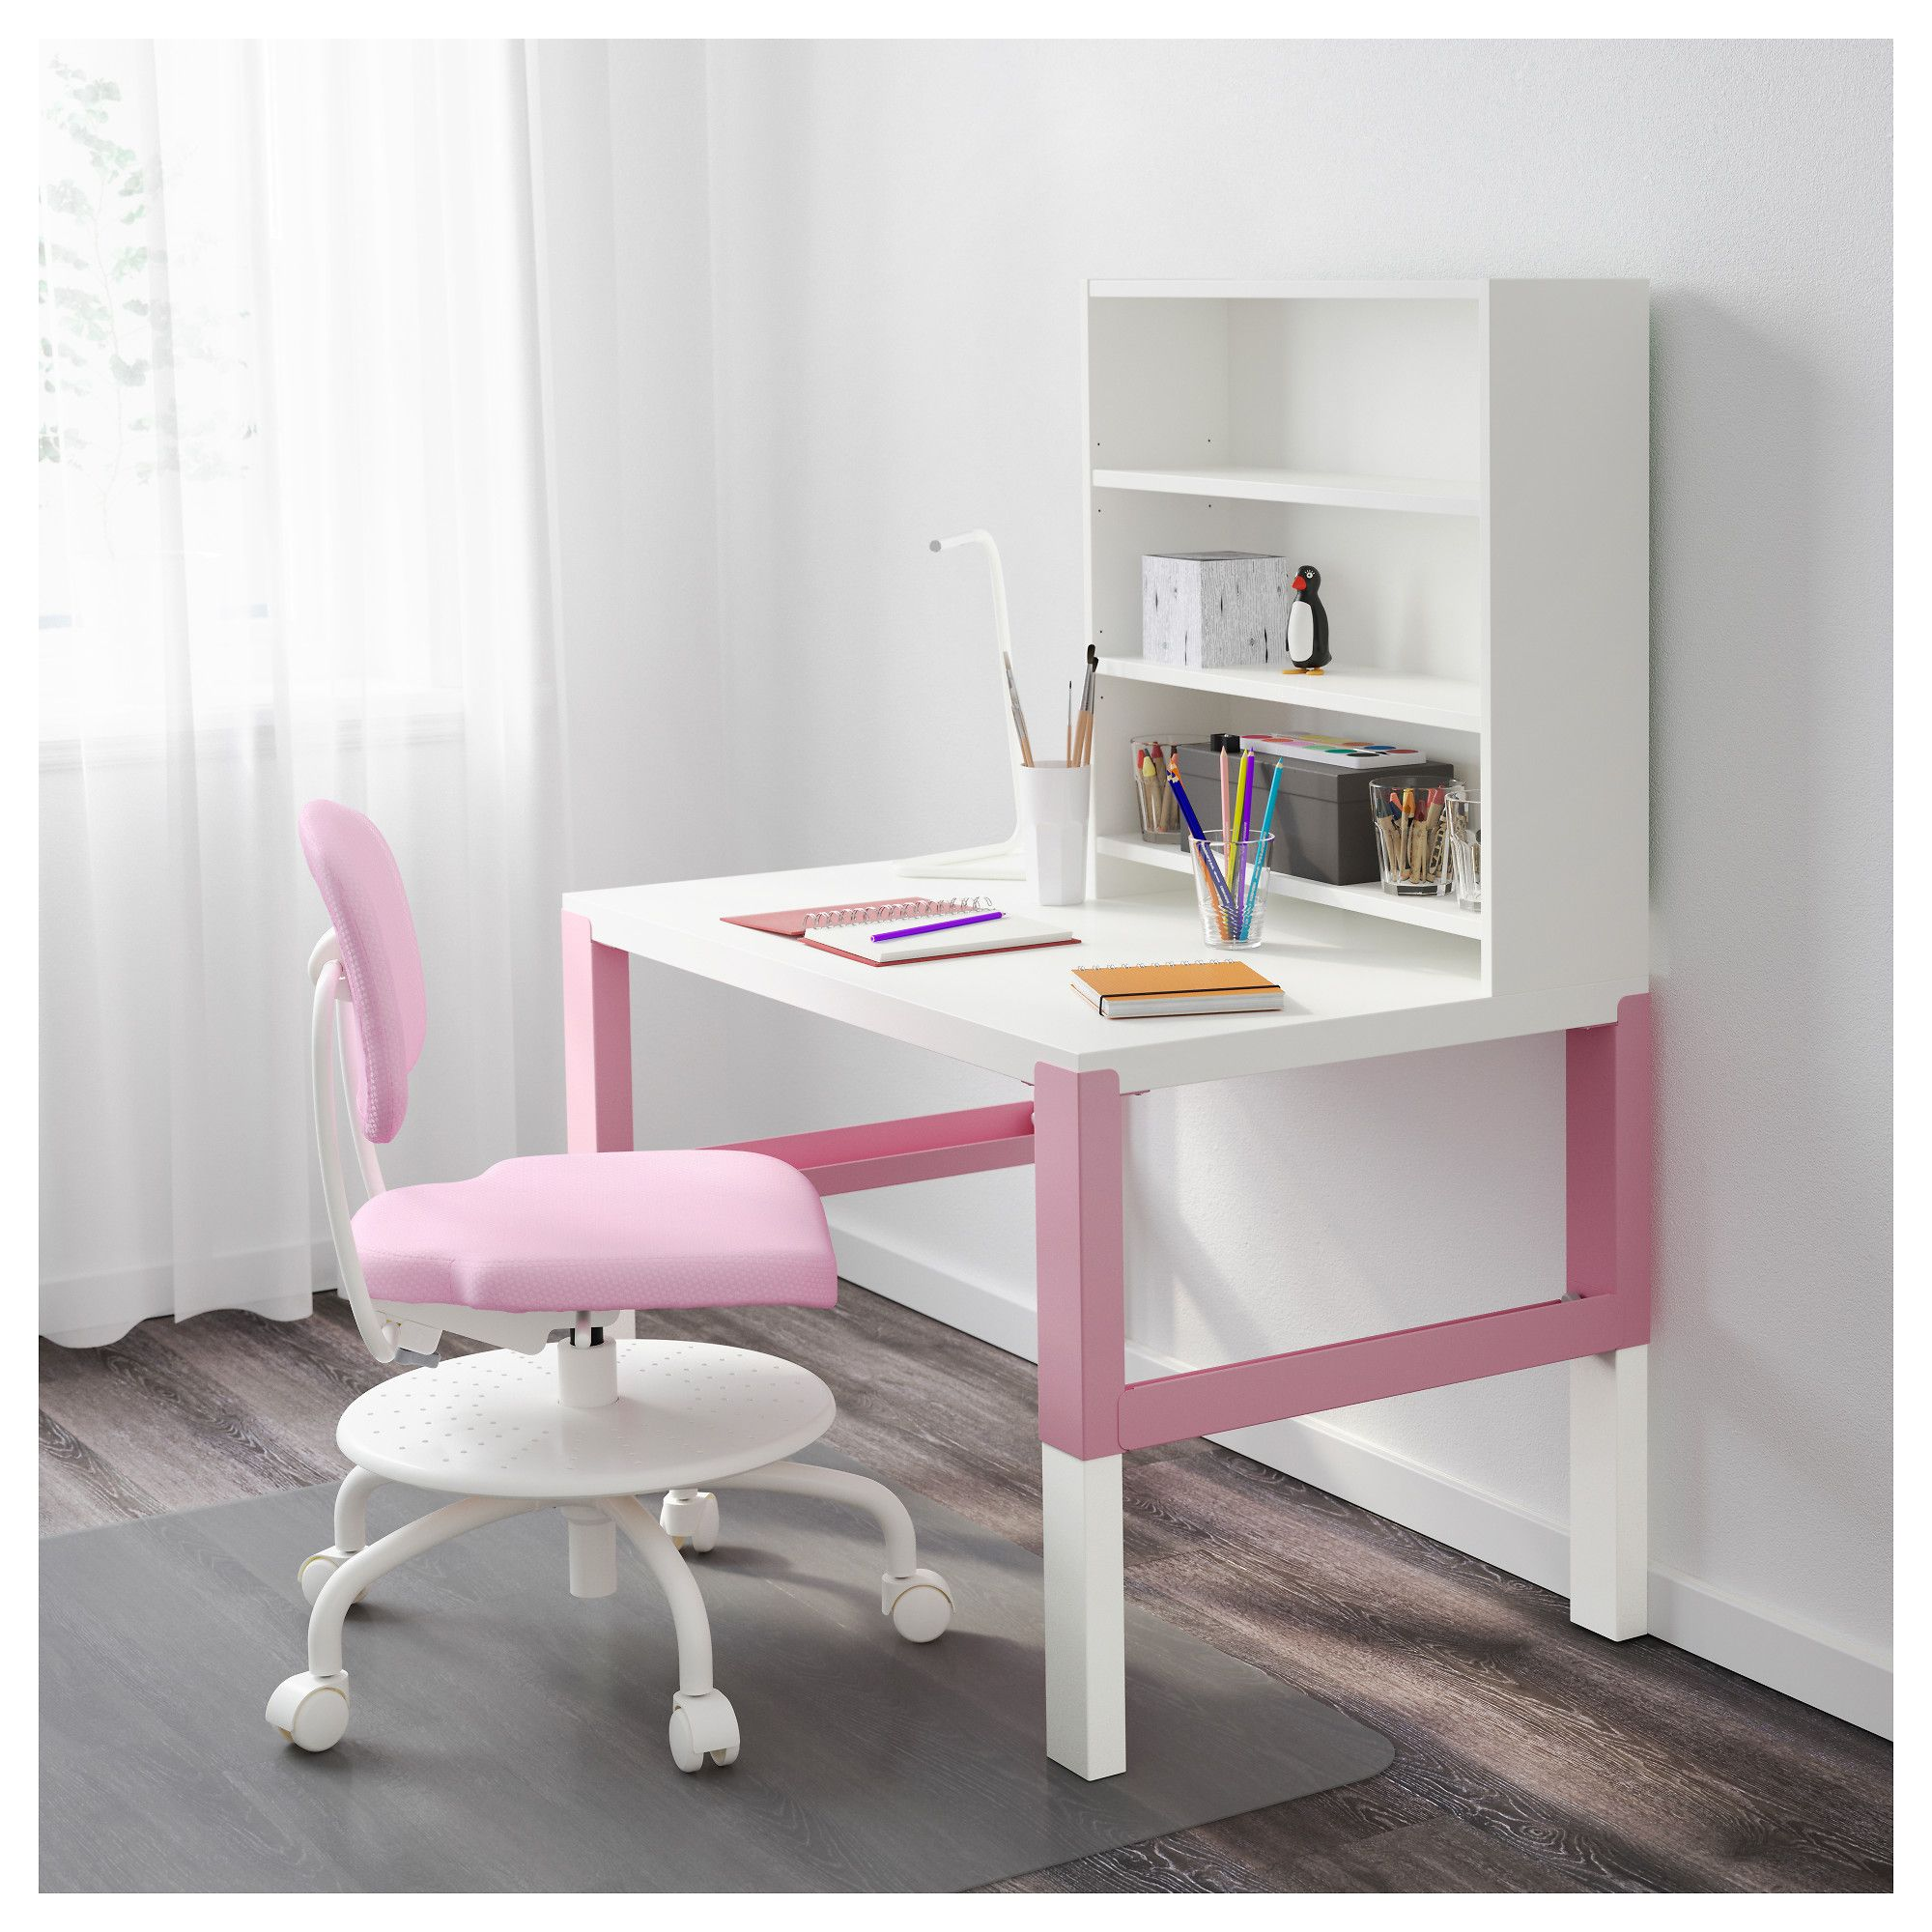 IKEA PÅHL Desk with addon unit white, pink Ikea, Desk